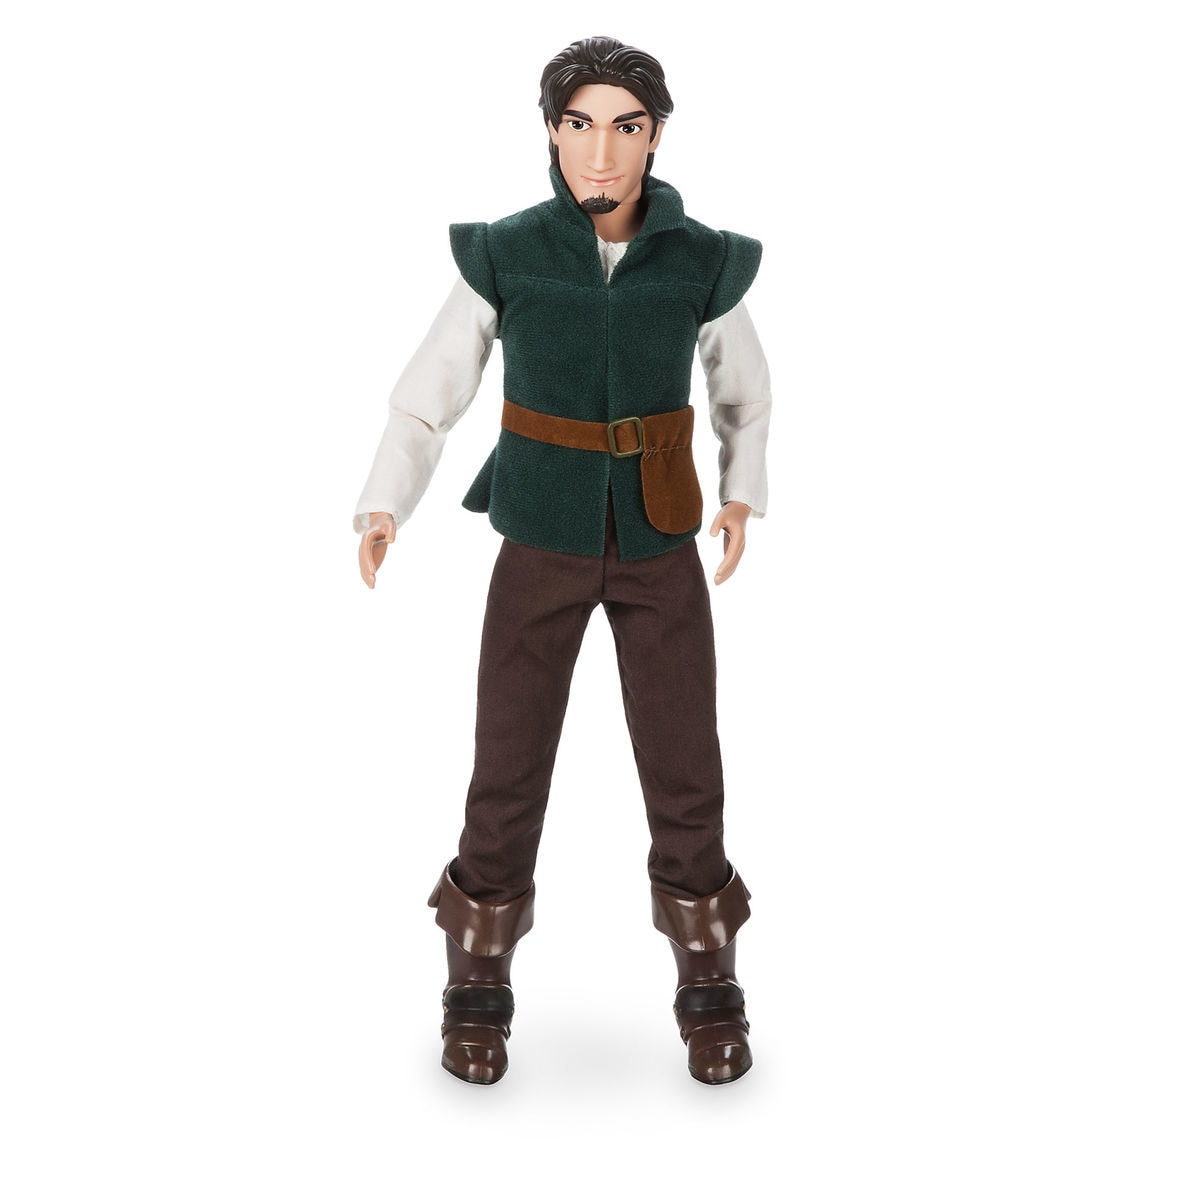 product image of flynn rider classic doll tangled 12 1